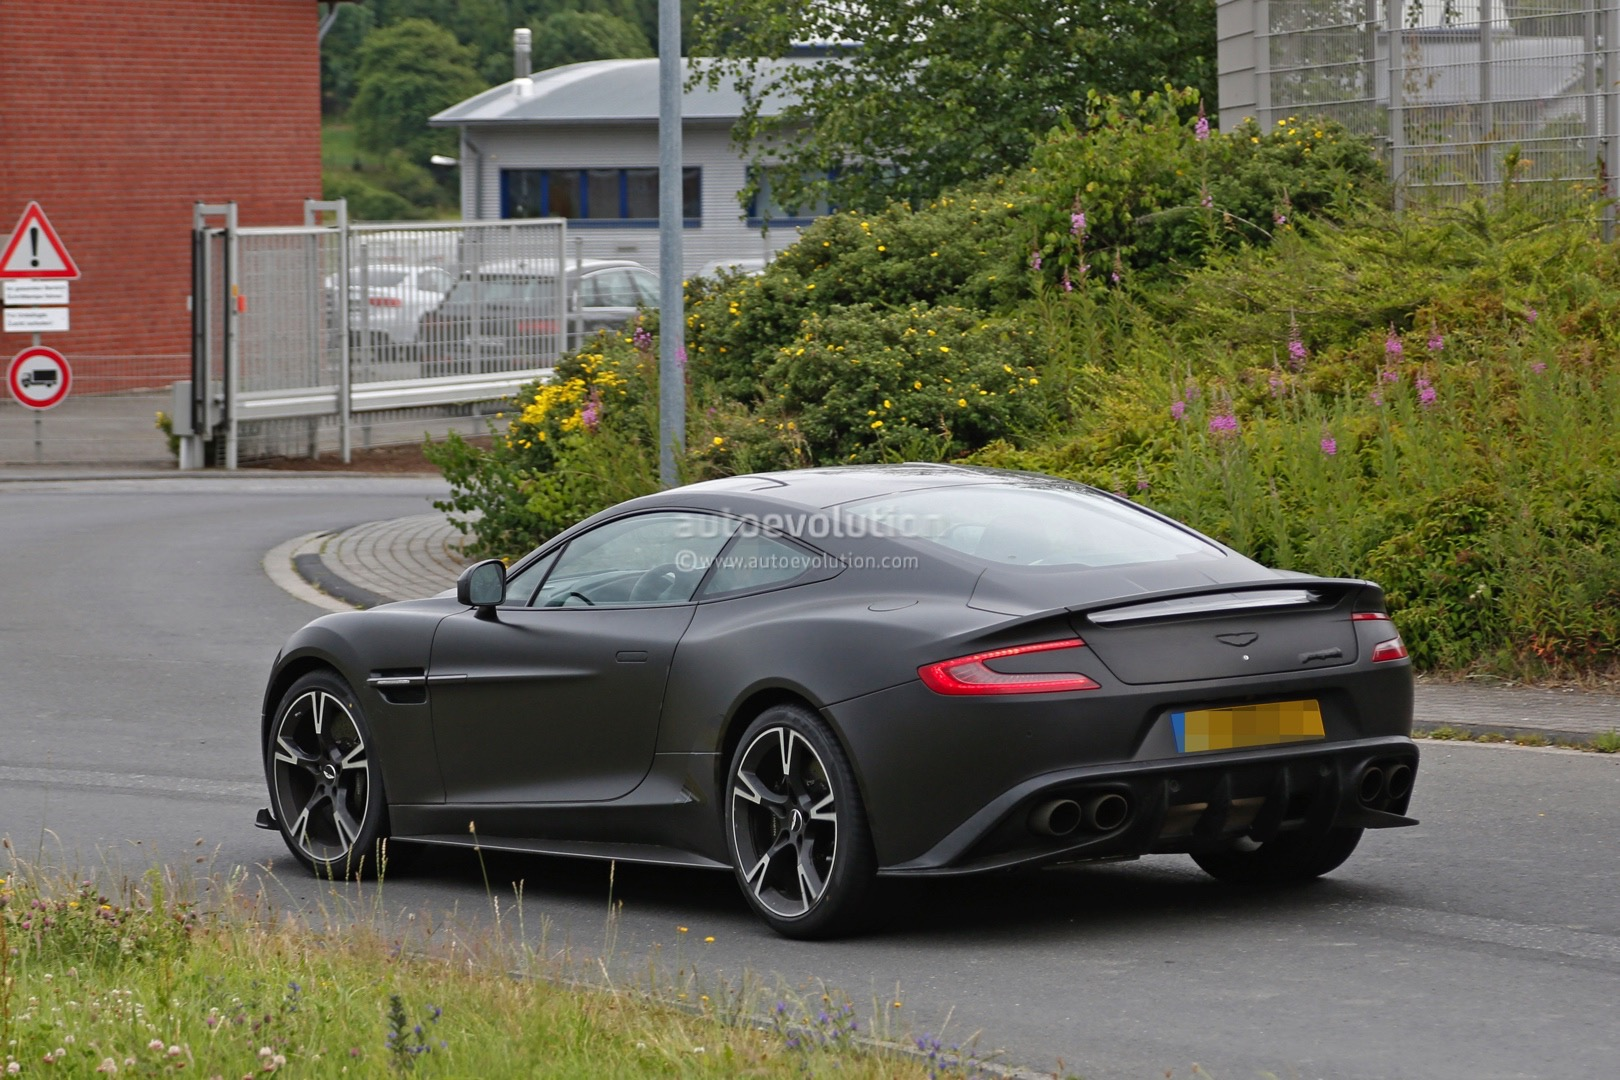 2017 Aston Martin Vanquish S Review Gt Great furthermore Aston Martin Db9 Wallpaper furthermore Ferrari 488 Spider additionally 2018 Aston Martin Vanquish S Spied For The First Time 109359 furthermore 07. on 2016 aston martin vanquish